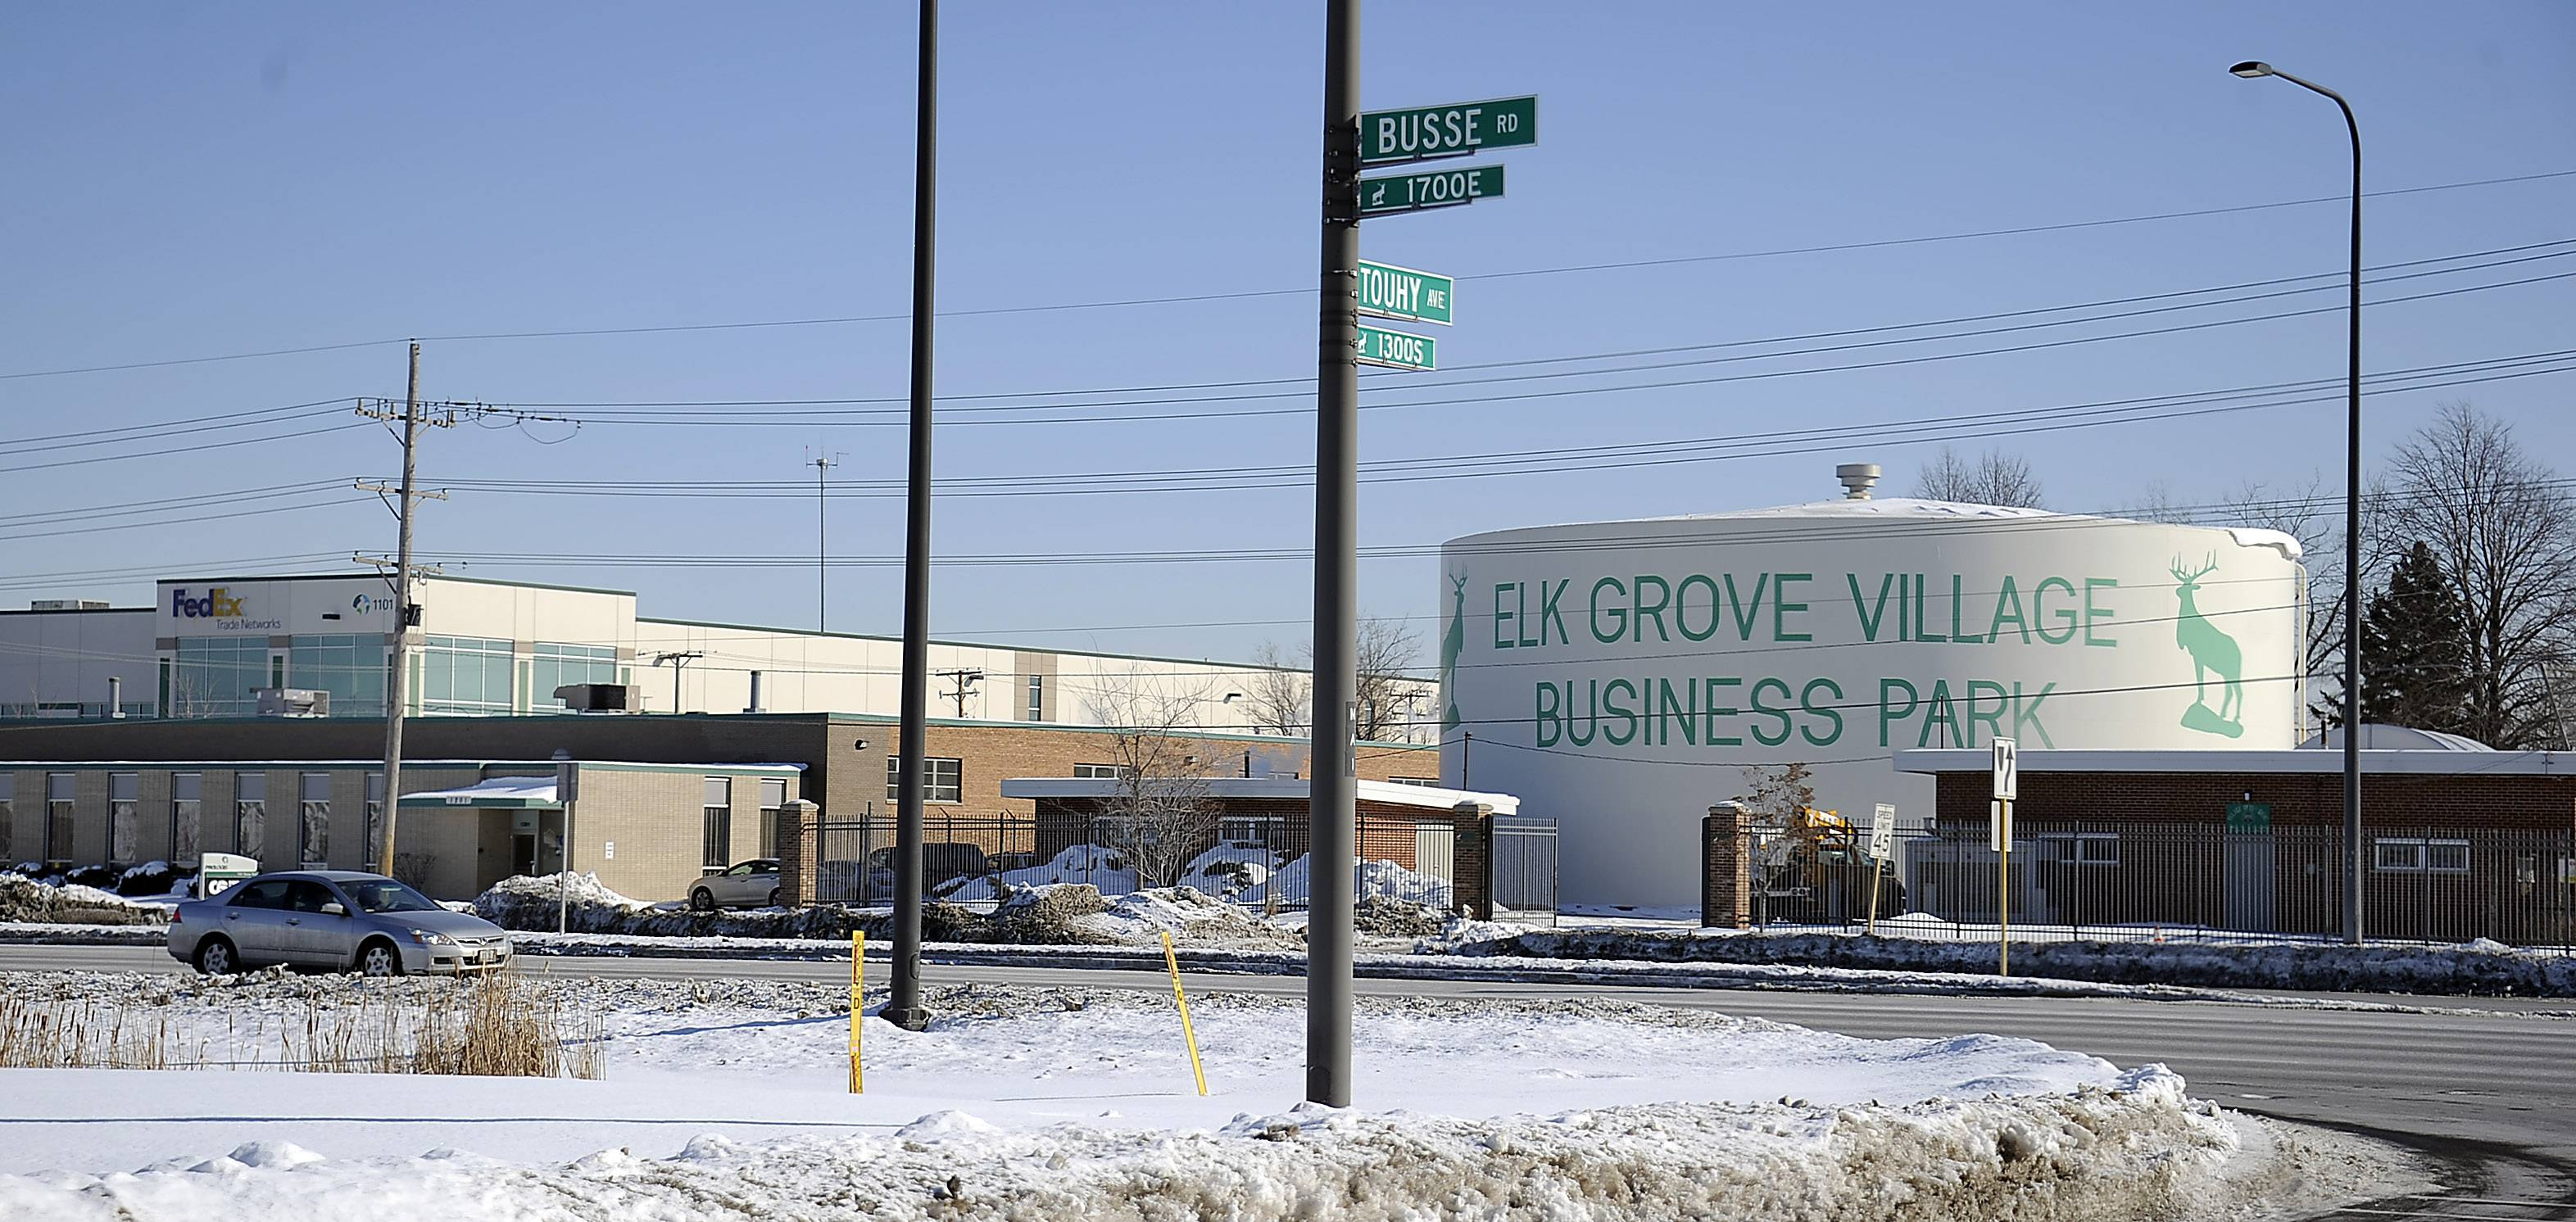 """Makers Wanted,"" the tagline in a promotion to attract businesses to Elk Grove Village, is part of the name of this week's Bahamas Bowl college football game. This is the The Elk Grove Village Business Park area at Busse Road and Touhy Avenue, which could wind up benefiting from the bowl sponsorship."